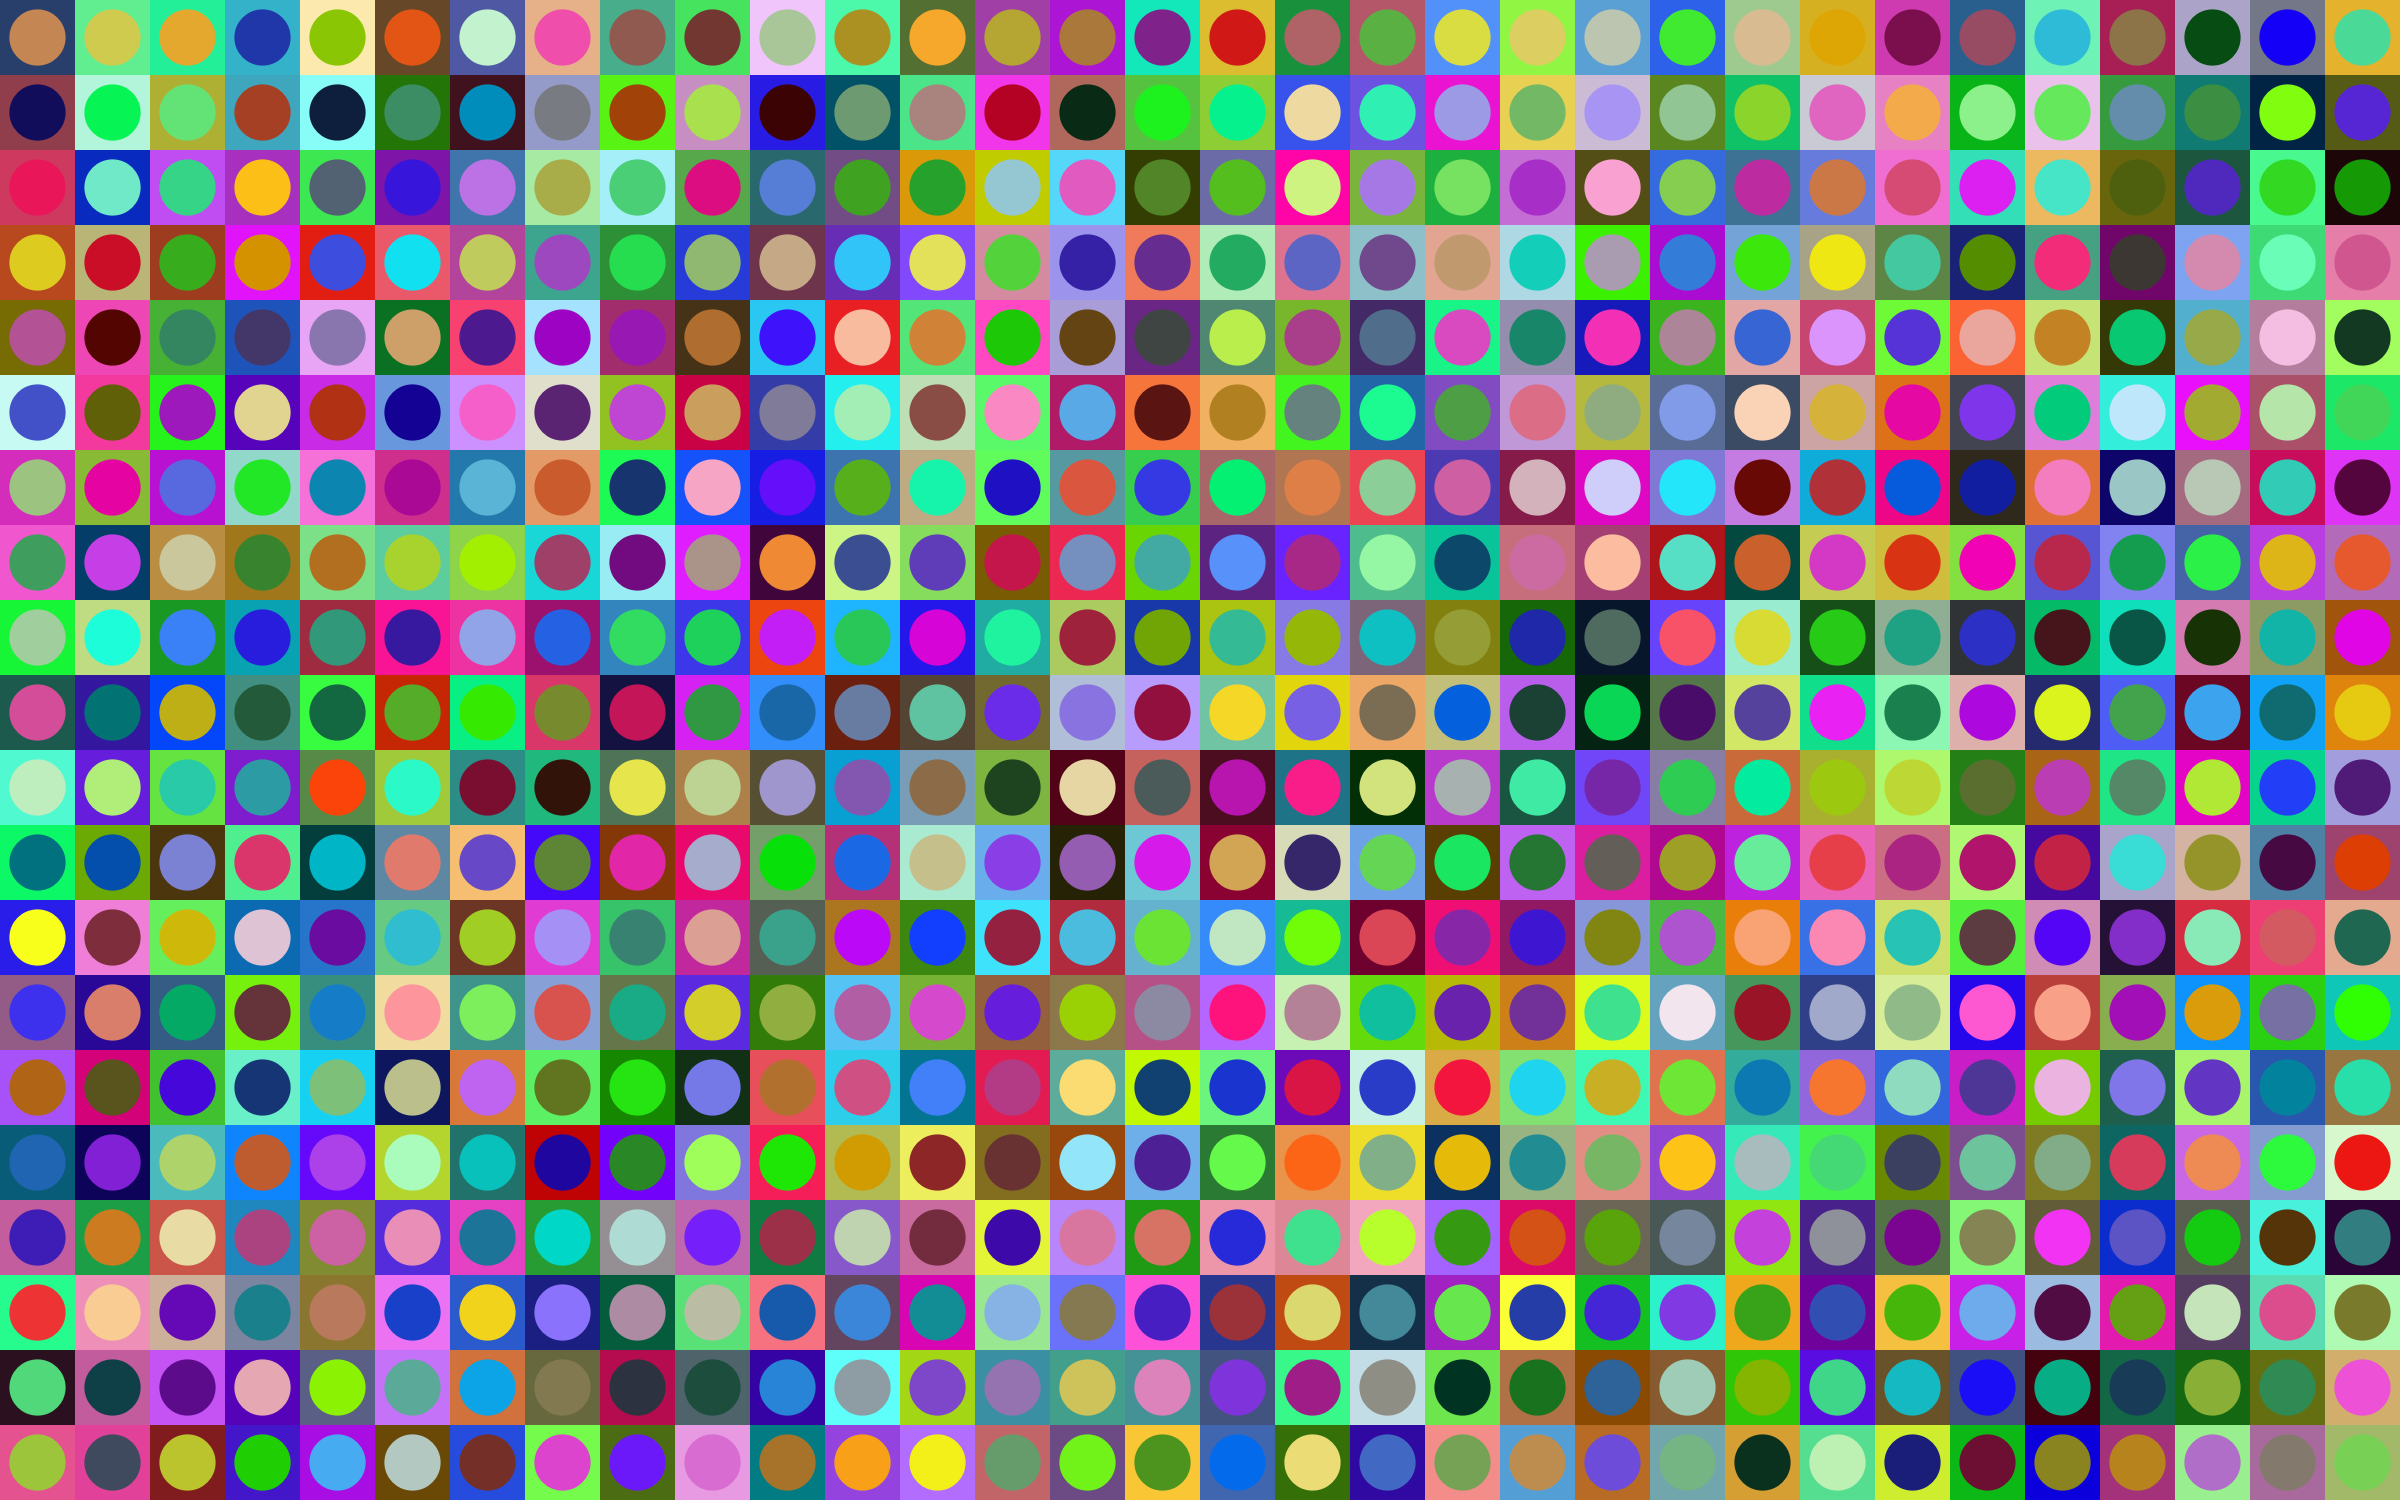 Prismatic Circles And Squares Checkerboard Pattern by GDJ